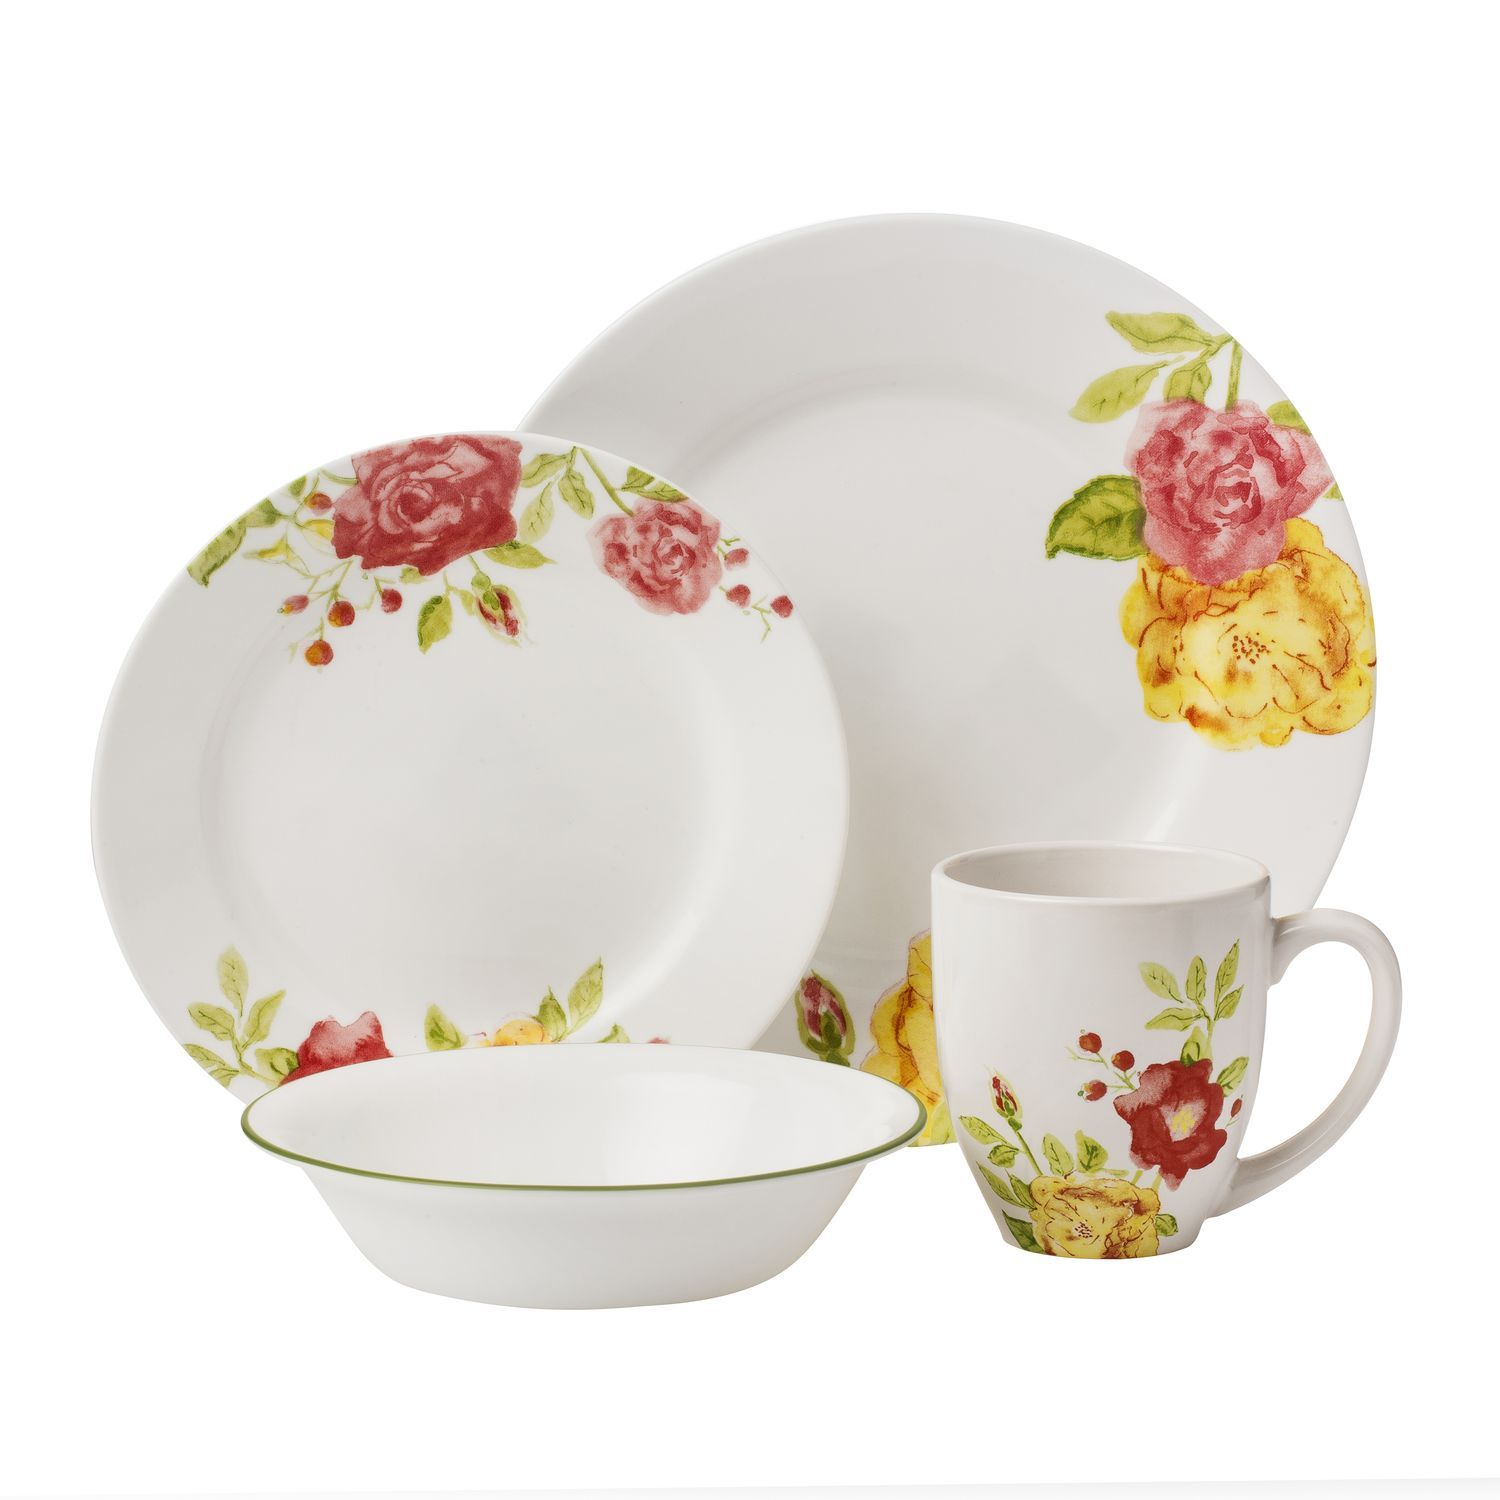 rare corelle patterns  google search  diy  dishes  pinterest - corelle boutique™ emma jane dinnerware set  fresh roses in red pink andyellow adorn modern wide rim plates this bold floral pattern is sure tobrighten